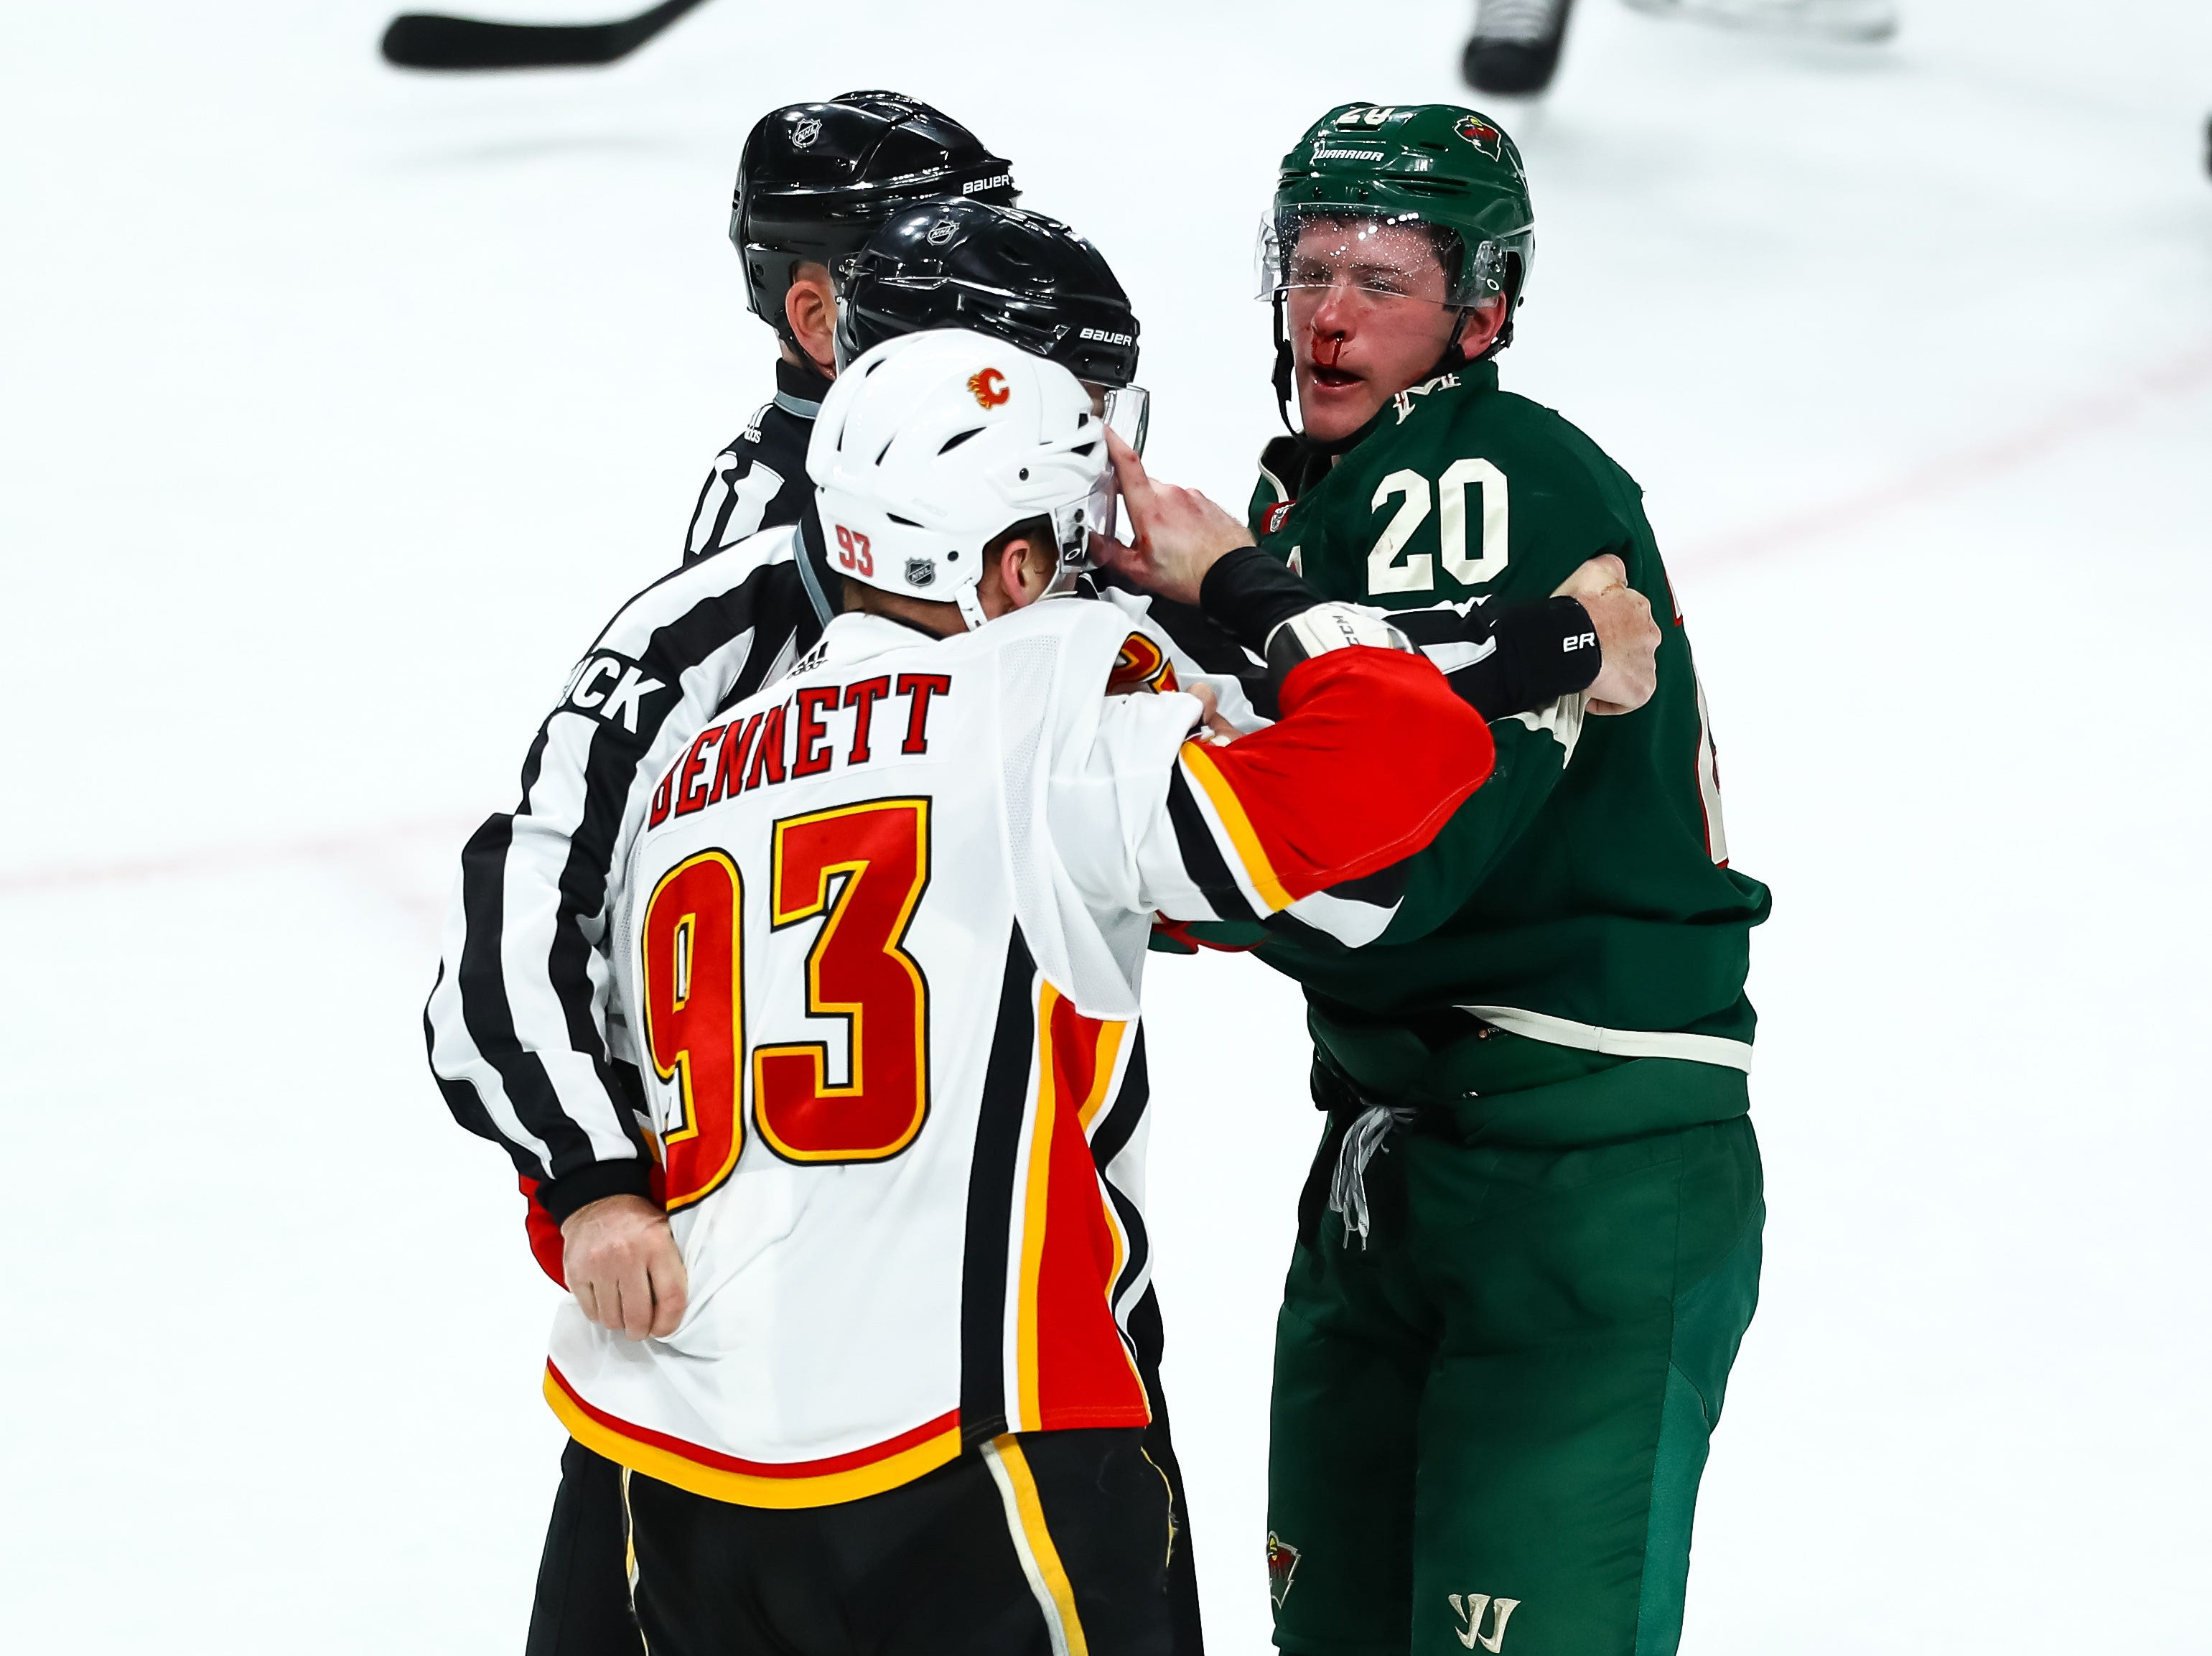 Dec 15: Calgary Flames' Sam Ben.nett (93) vs. Minnesota Wild's Ryan Suter.